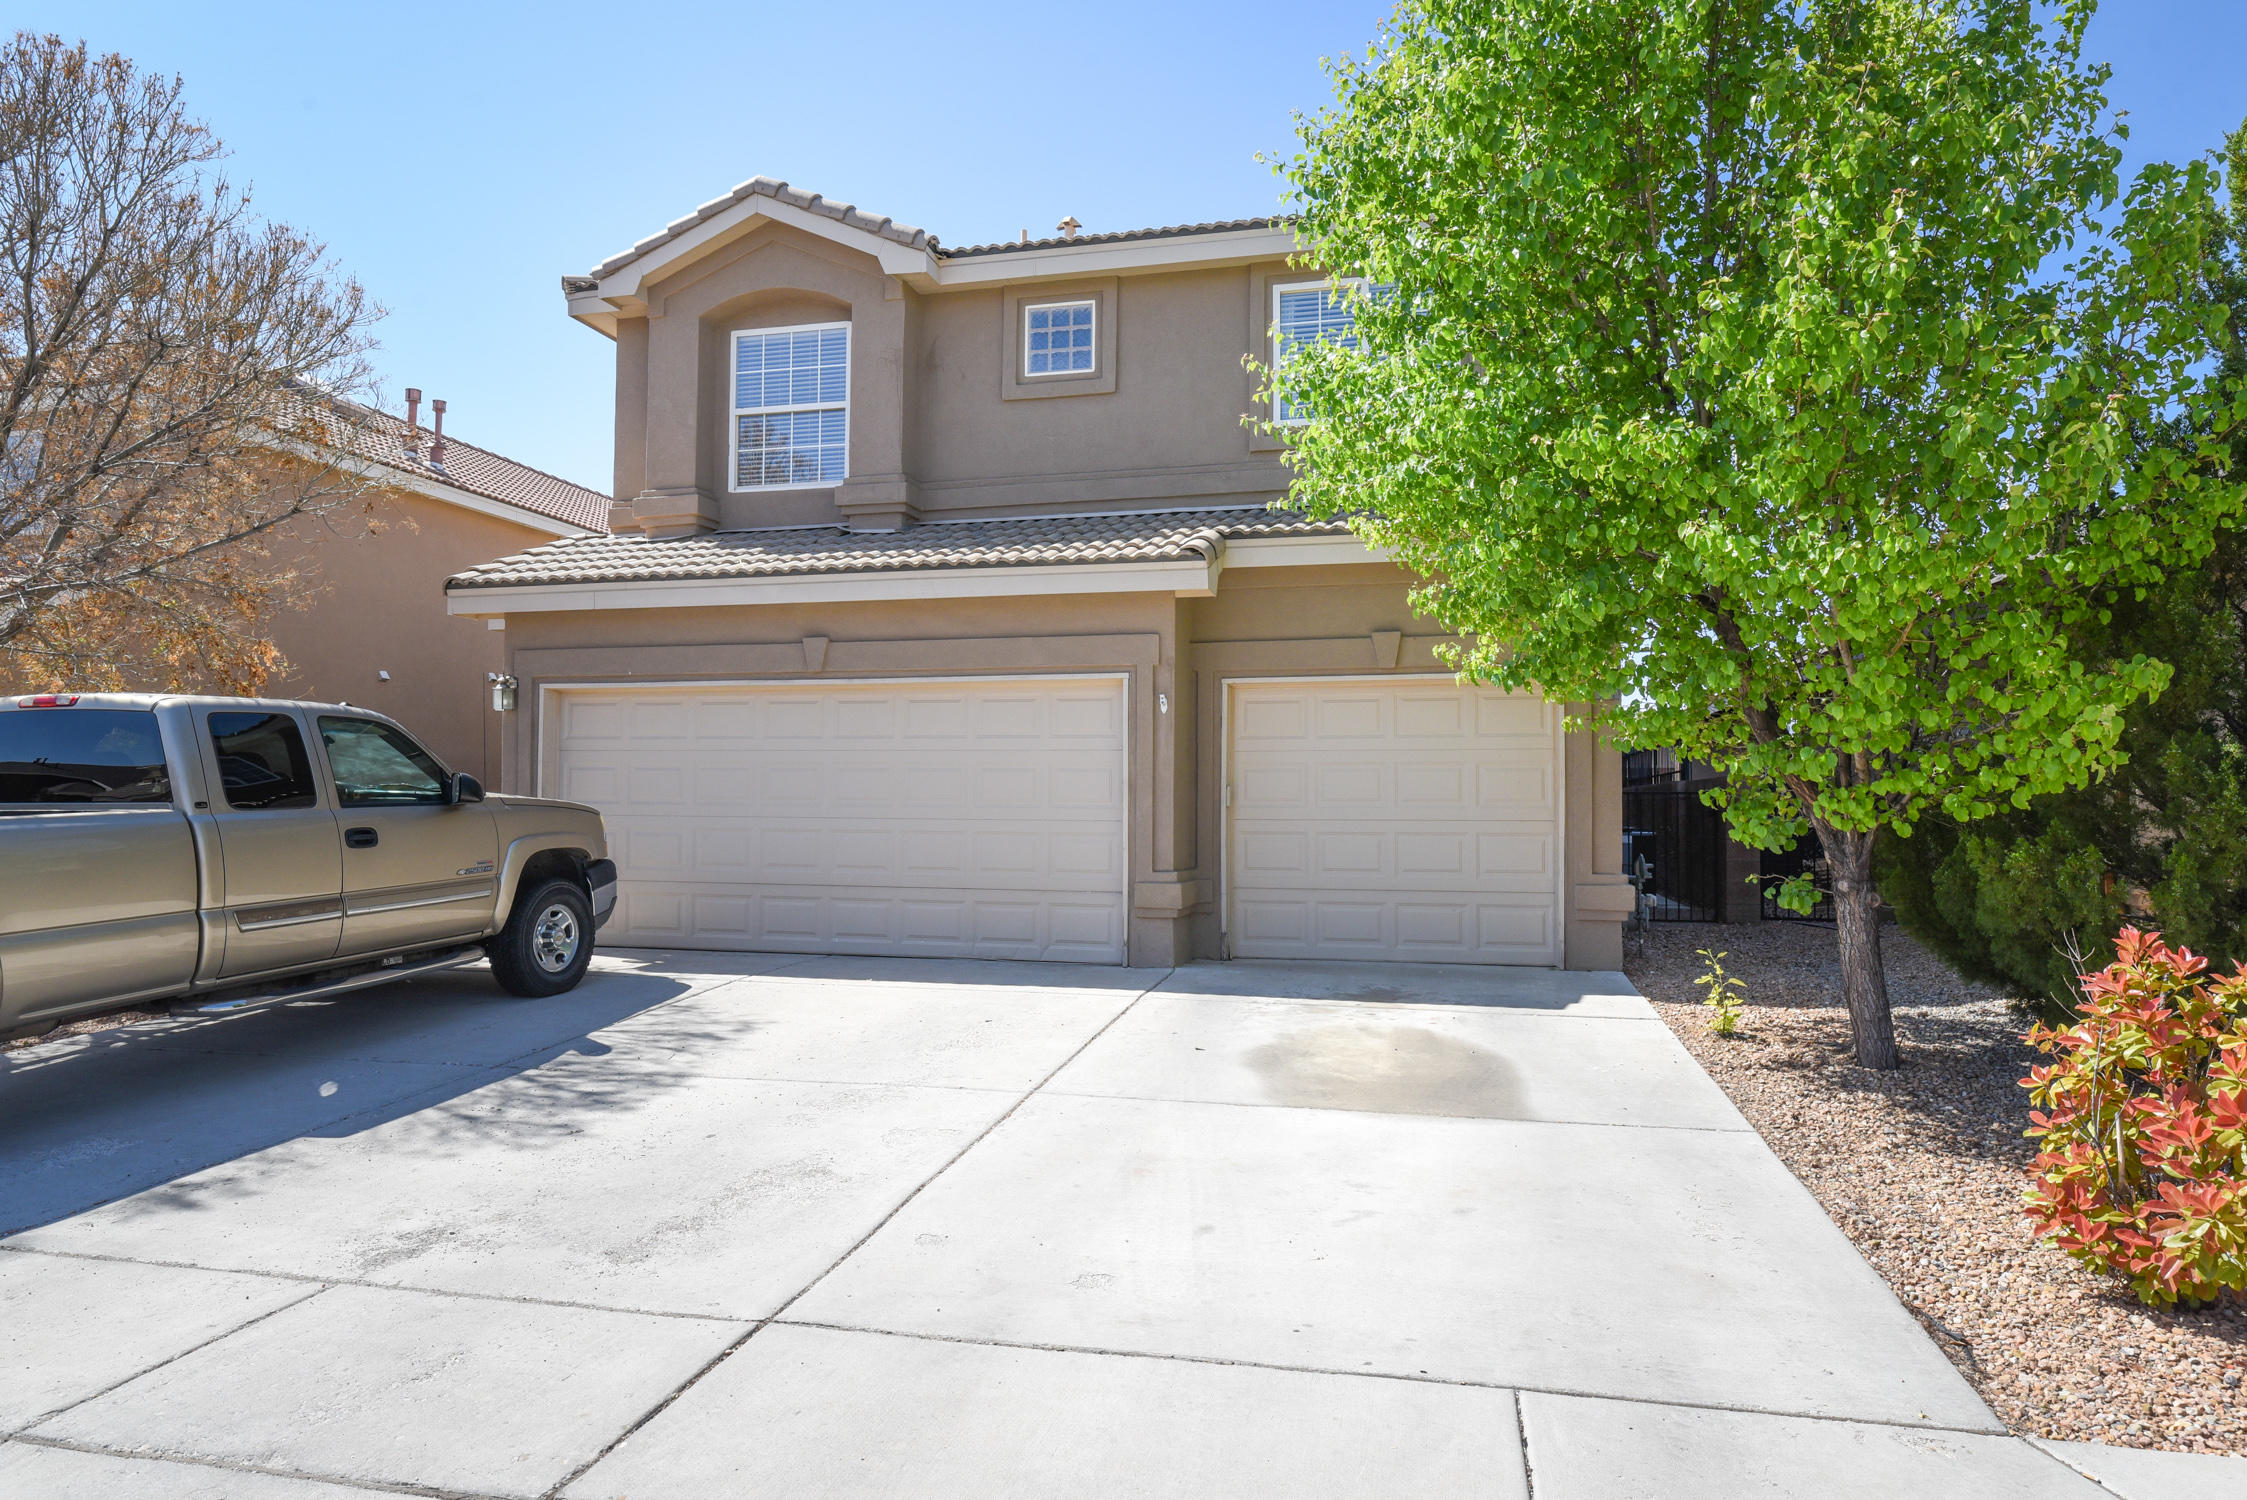 Big 2 story in the heart of Ventana Ranch. There is a bedroom downstairs next to a full bath if needed! If you need a lot of bedrooms, this home has 5! New carpet and interior paint. You will love the 3 car garage for extra parking and storage. Close to Schools and parks.